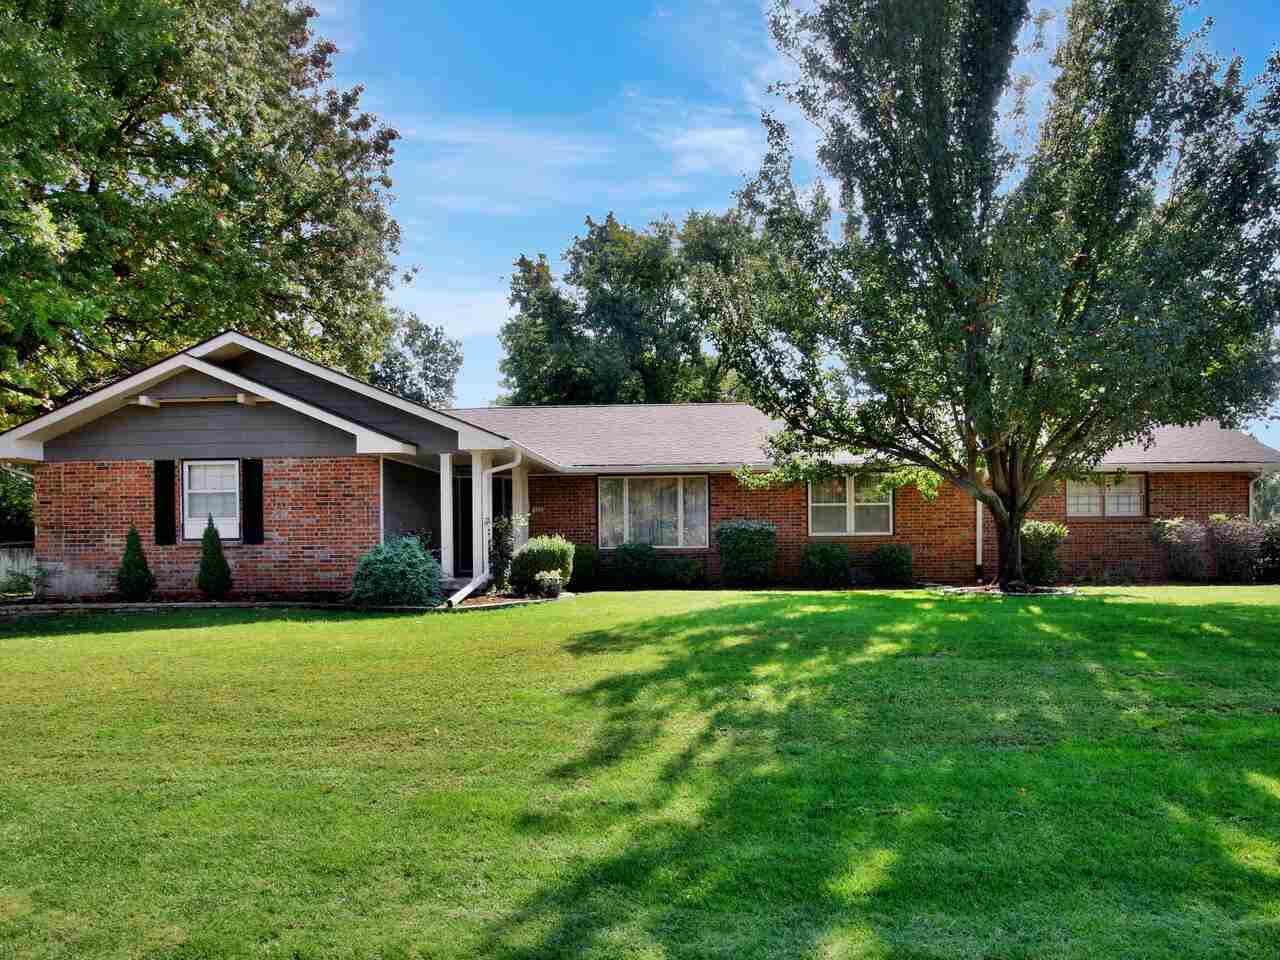 Gorgeous home with a large shop on a 1/2 acre lot in the Goddard School District! This 3 bedroom, 3